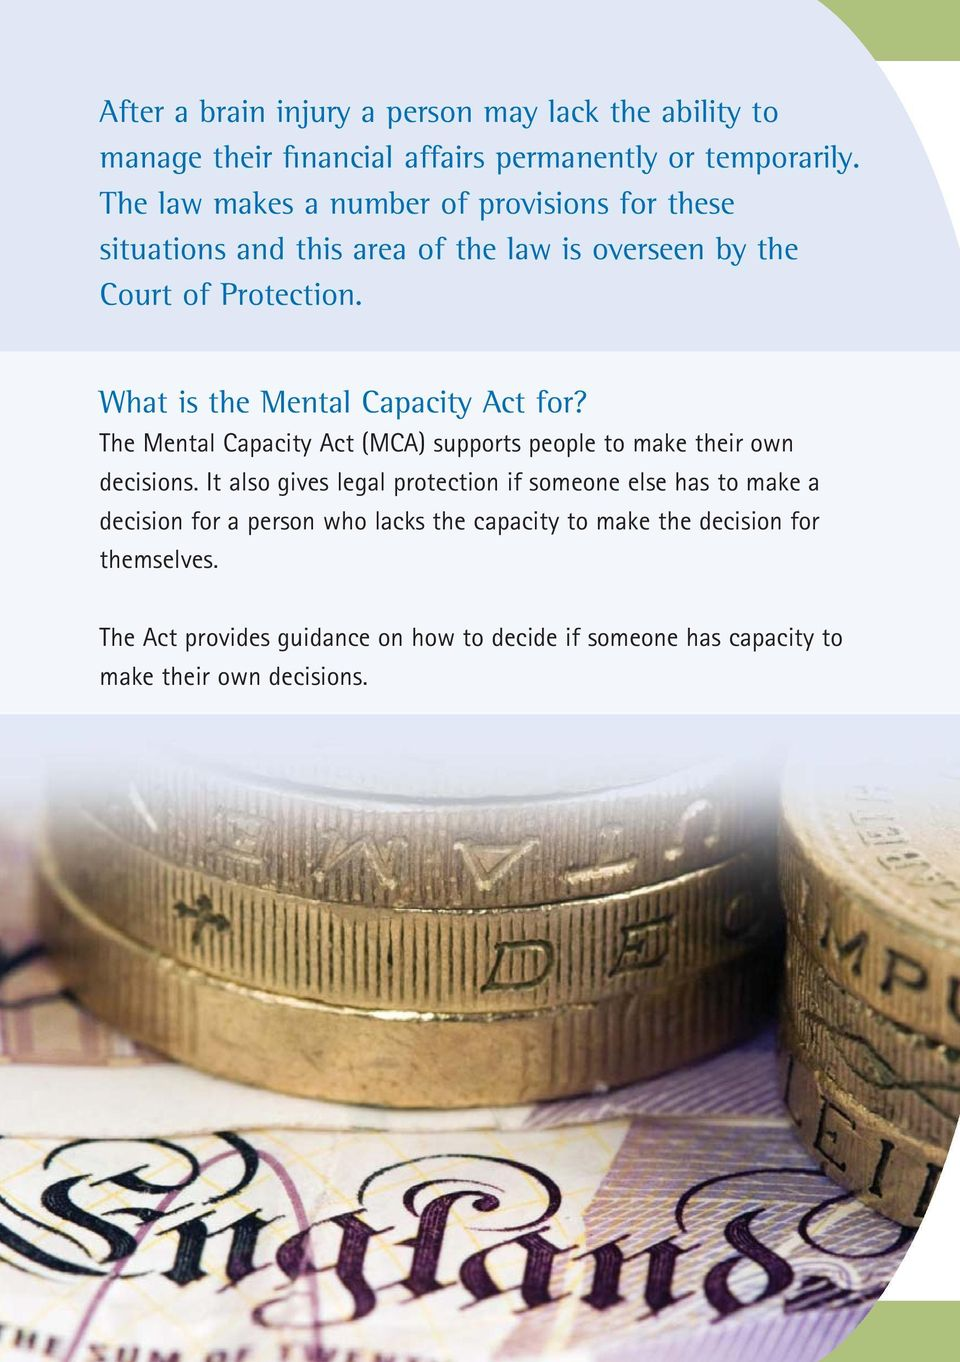 What is the Mental Capacity Act for? The Mental Capacity Act (MCA) supports people to make their own decisions.